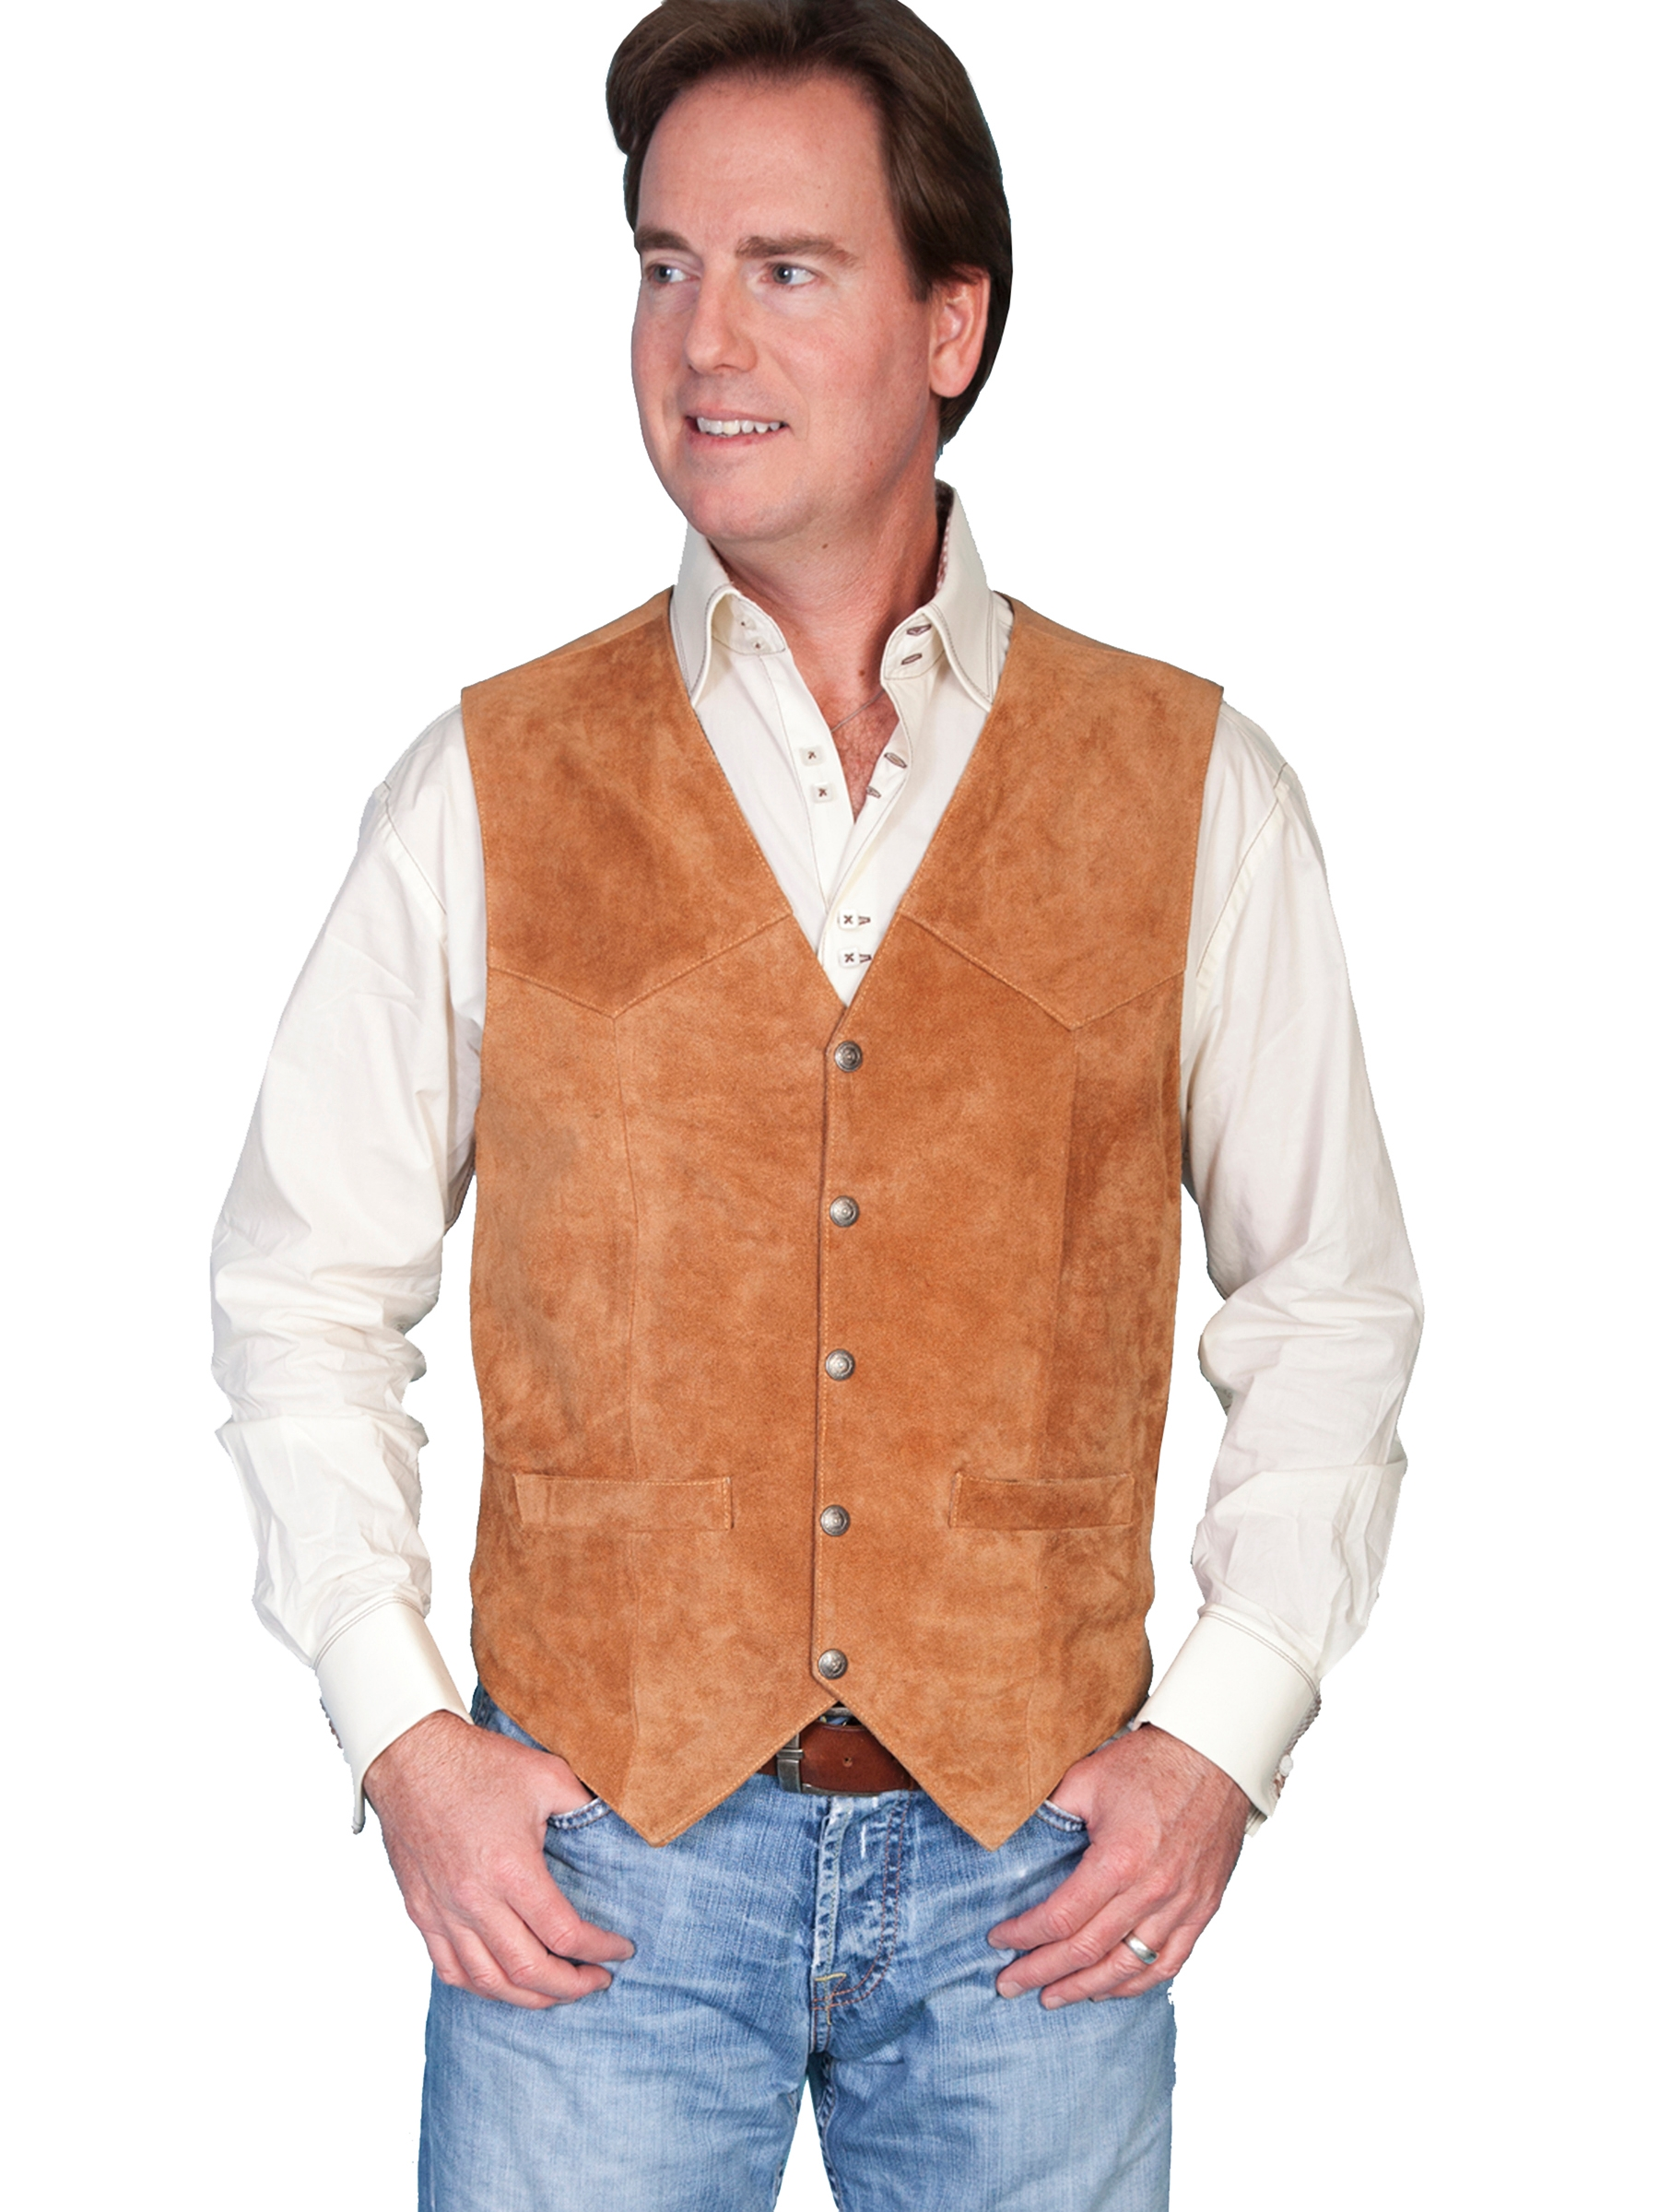 About Men's Leather Vests Overland Sheepskin Co. is the most trusted source of quality men's leather vests. Our leather vests for men are meticulously constructed of impeccably fine leather for long-lasting warmth, comfort, and style.